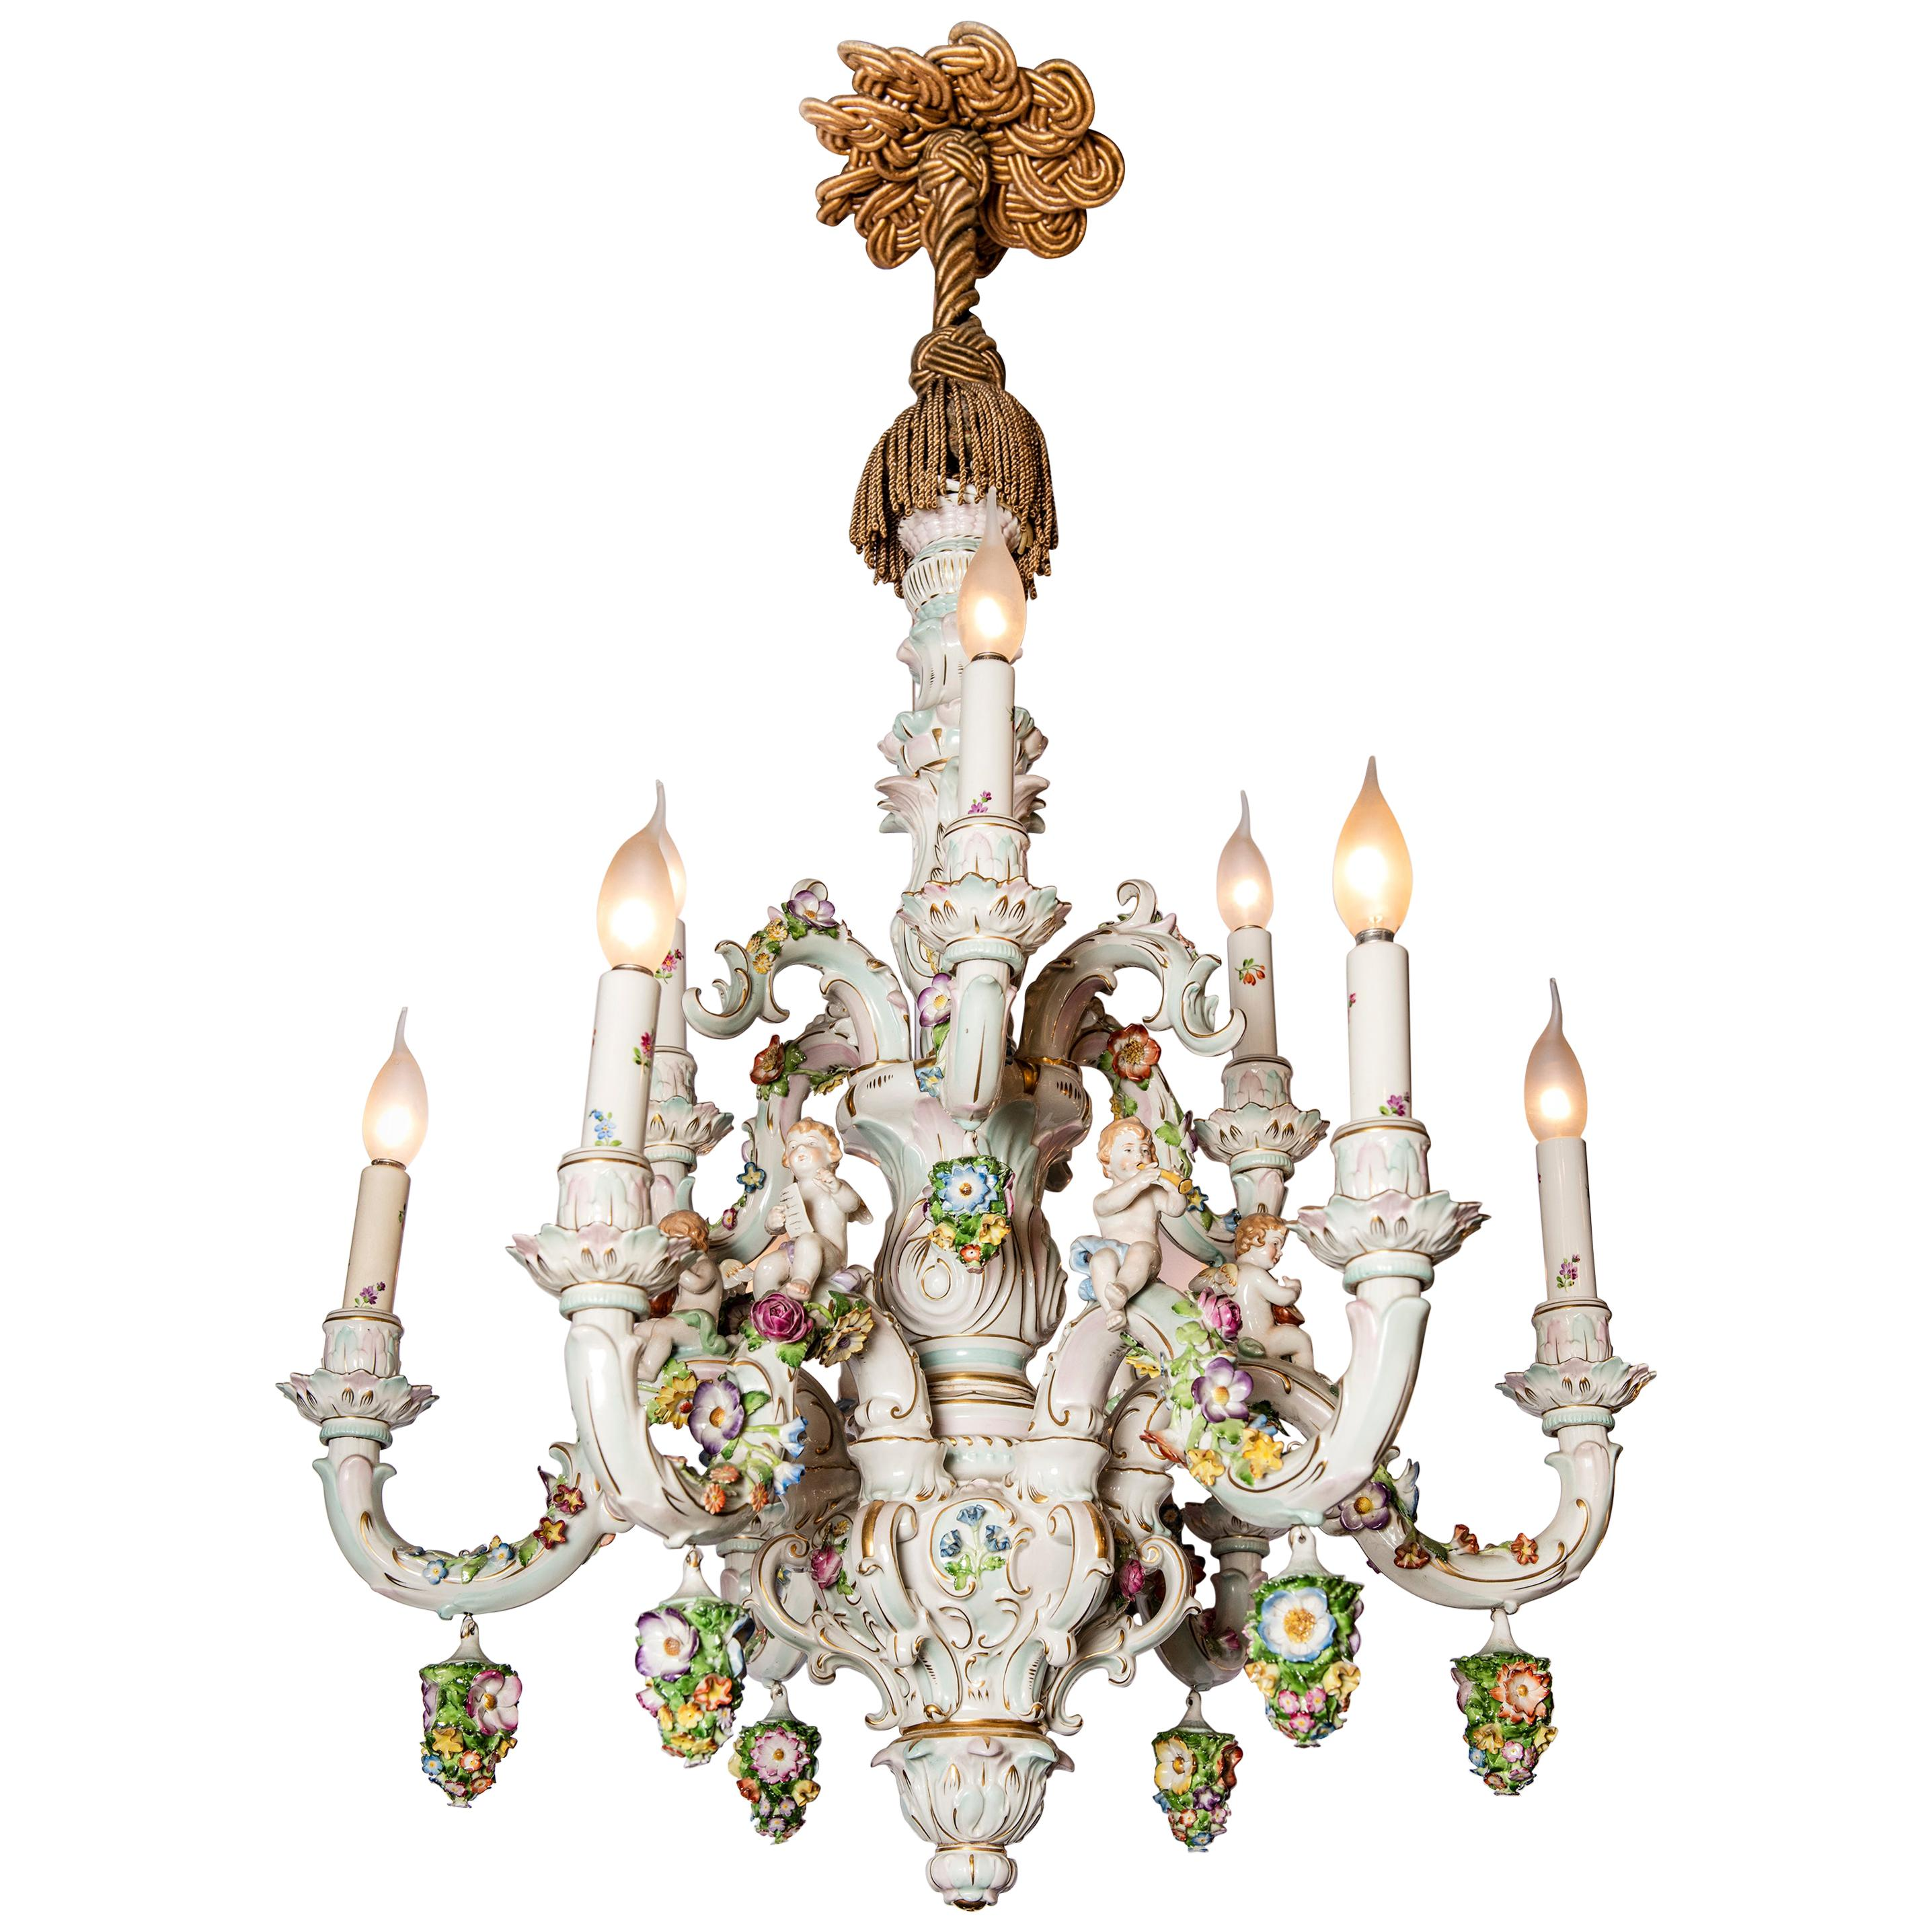 Porcelain Chandelier with Flowers and Angels, Germany, circa 1900